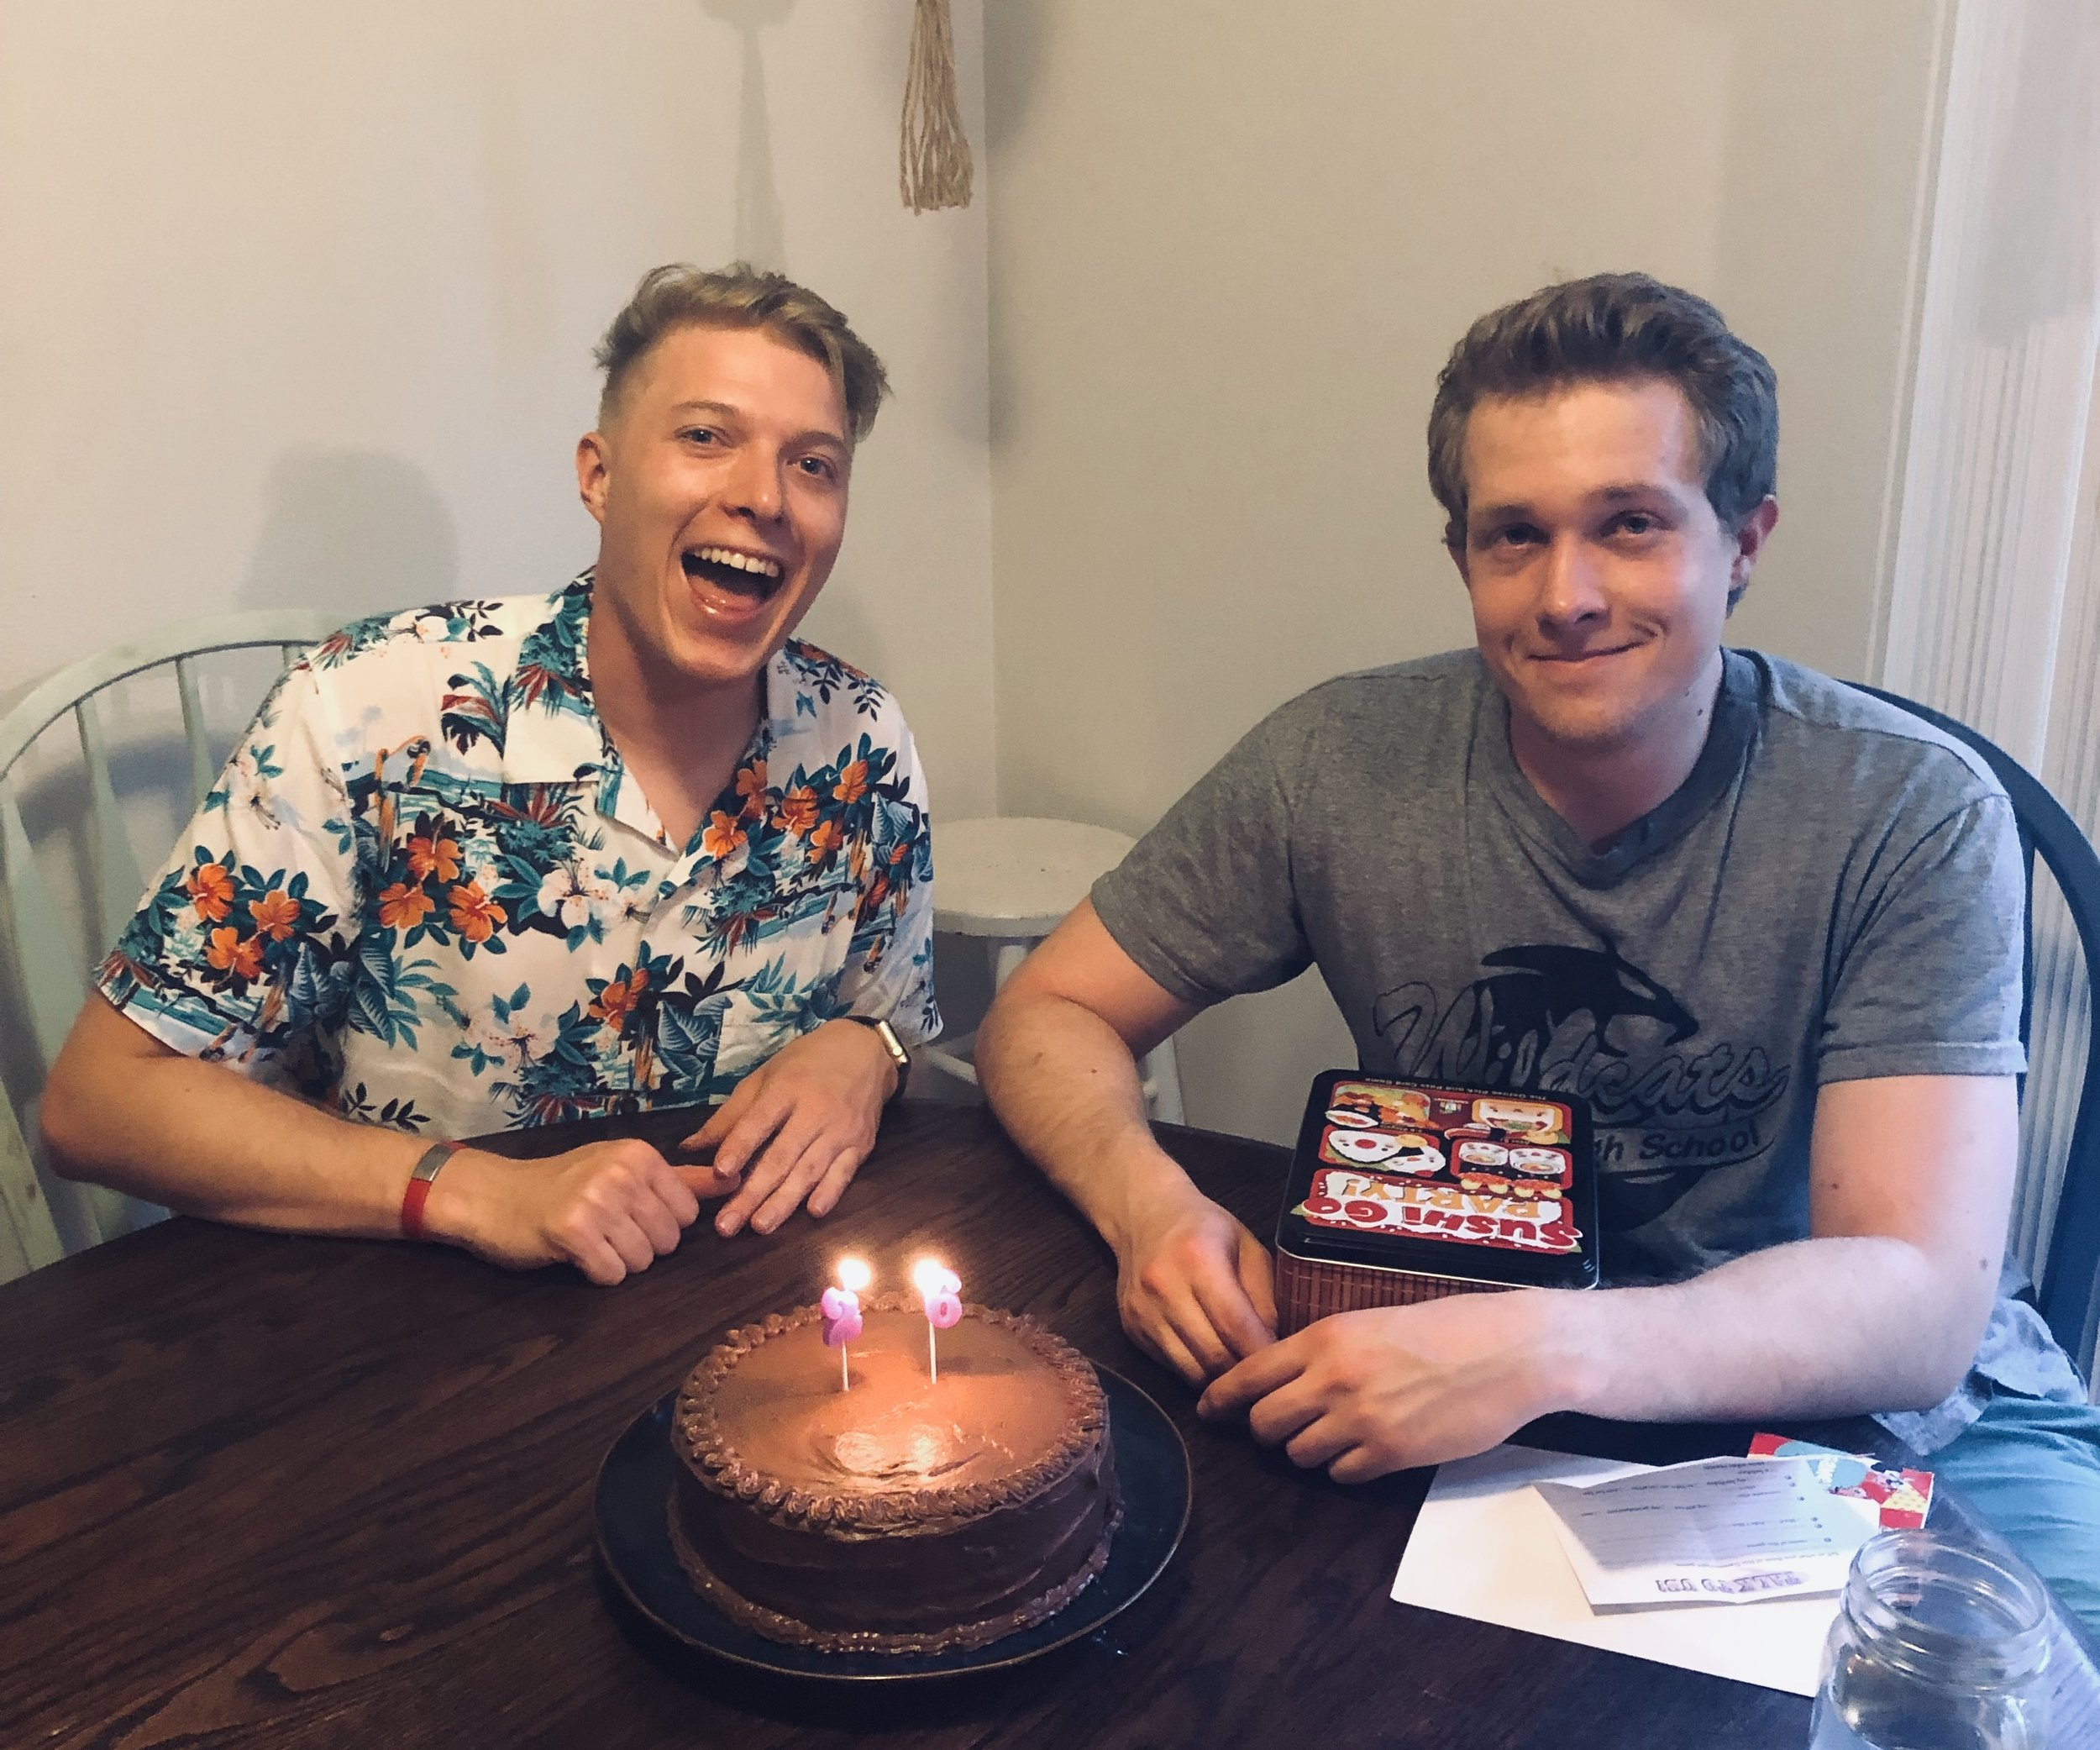 My brother Kyle and I celebrating our Birthday!